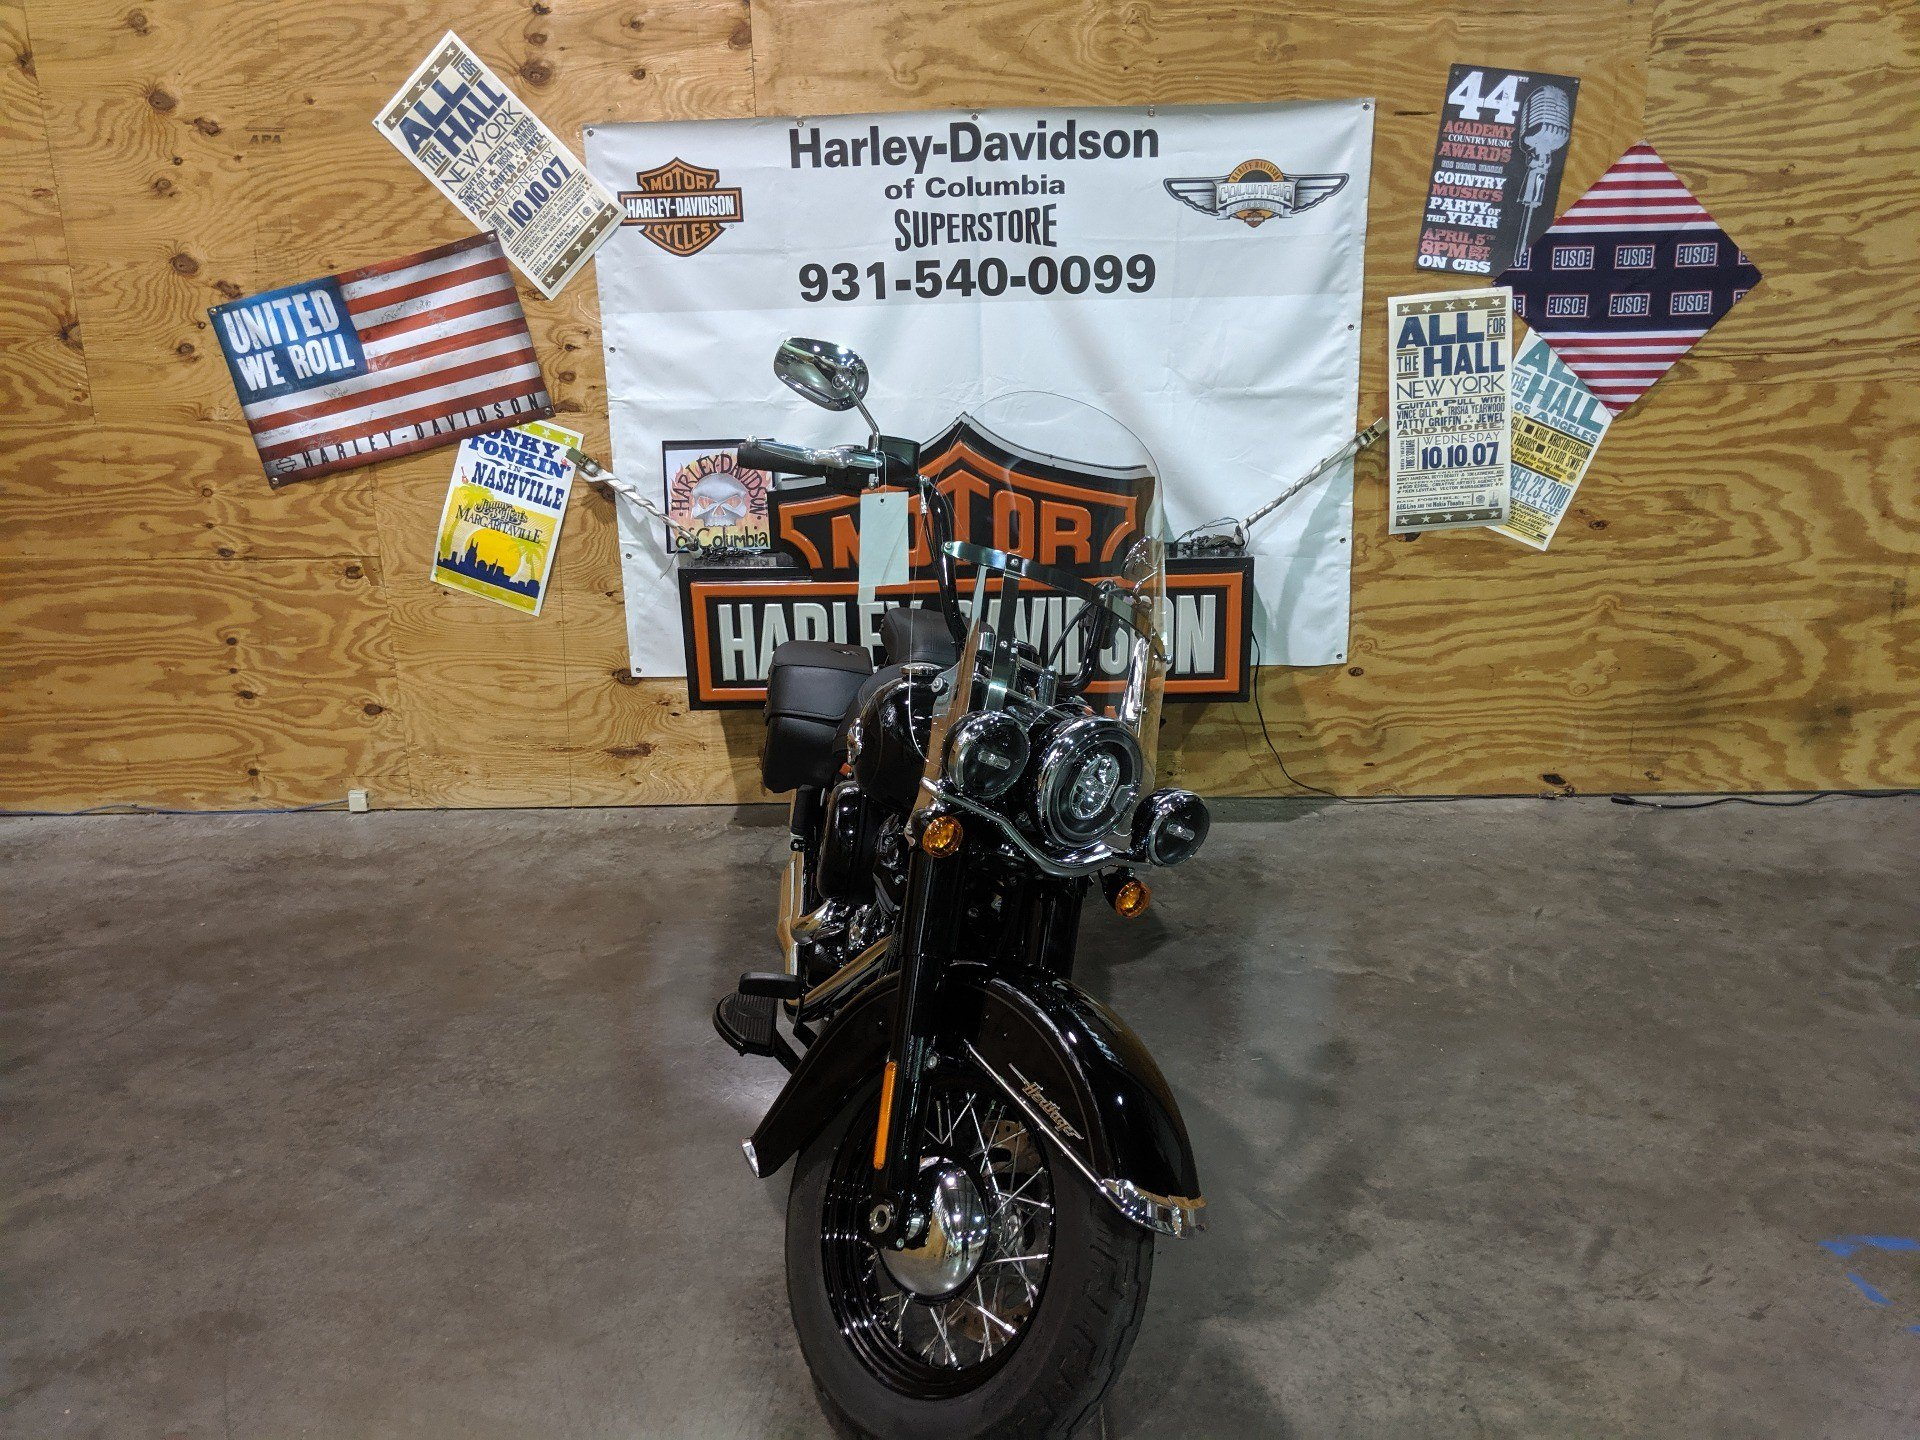 2018 Harley-Davidson HERITAGE in Columbia, Tennessee - Photo 3